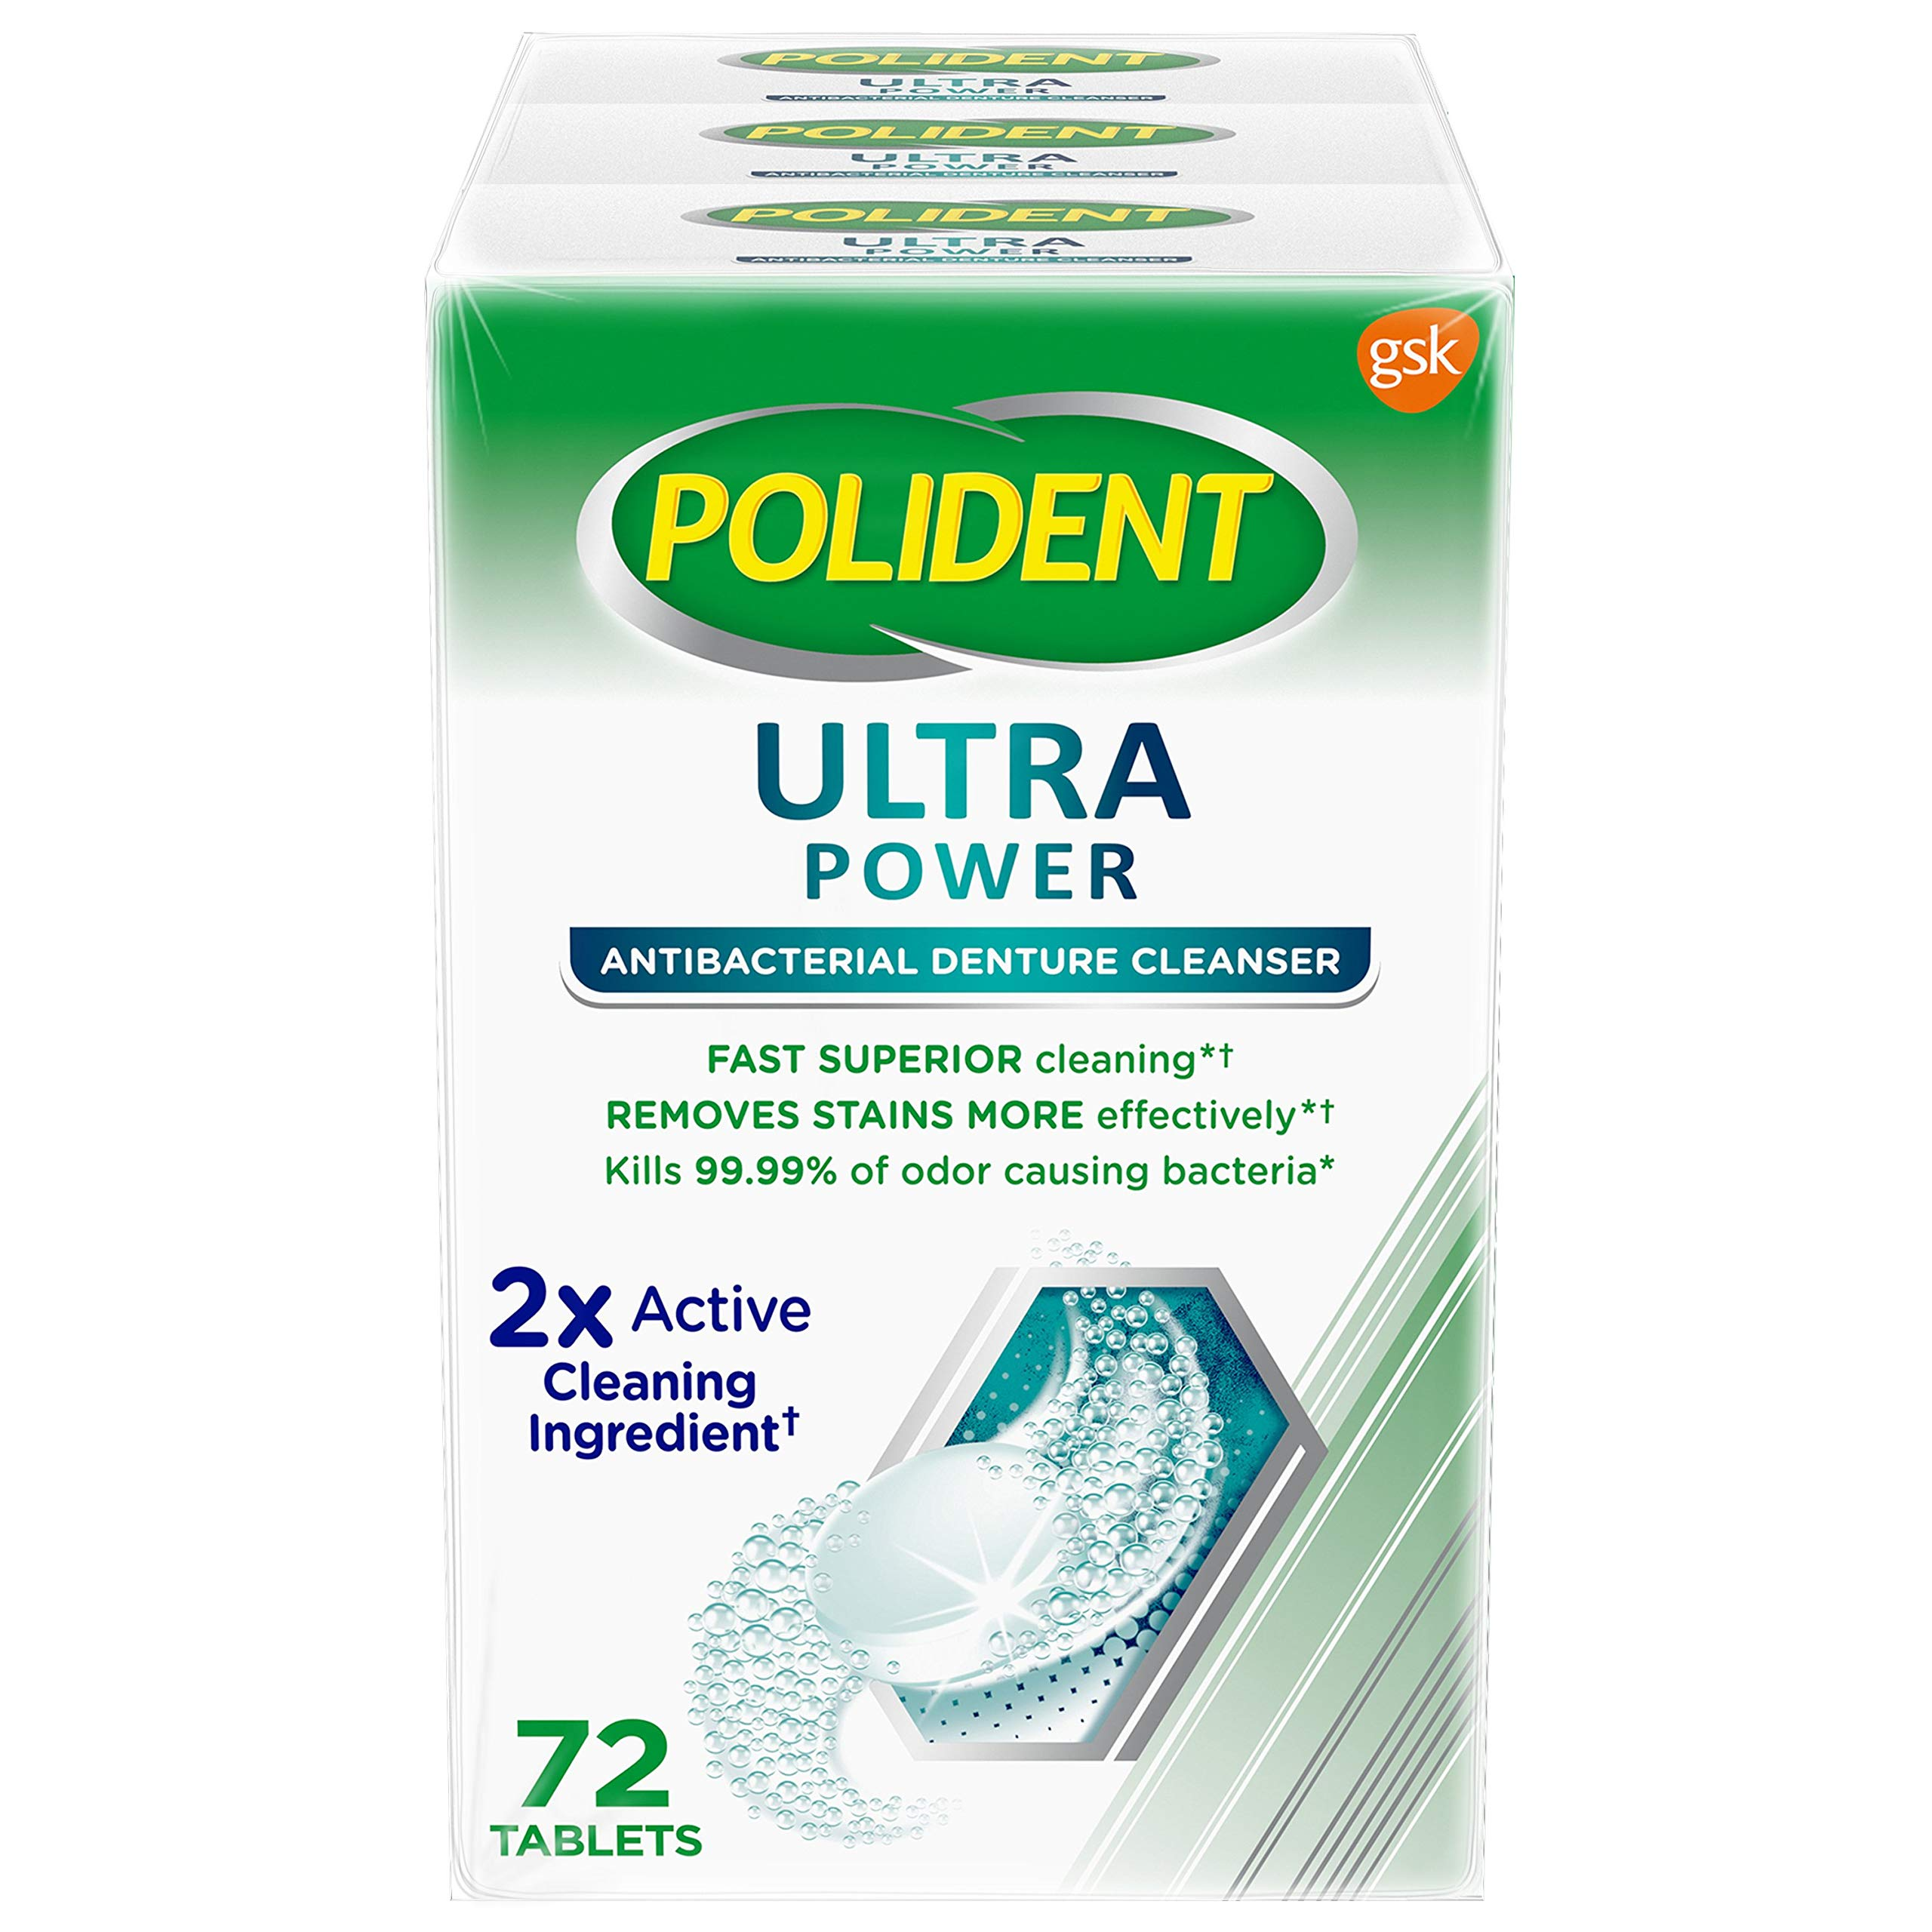 Polident denture cleaning tablets ultra power denture cleanser, 72 count (pack of 3) helps remove odor causing bacteria, plaque and stains from dentures, 216 Count by Polident